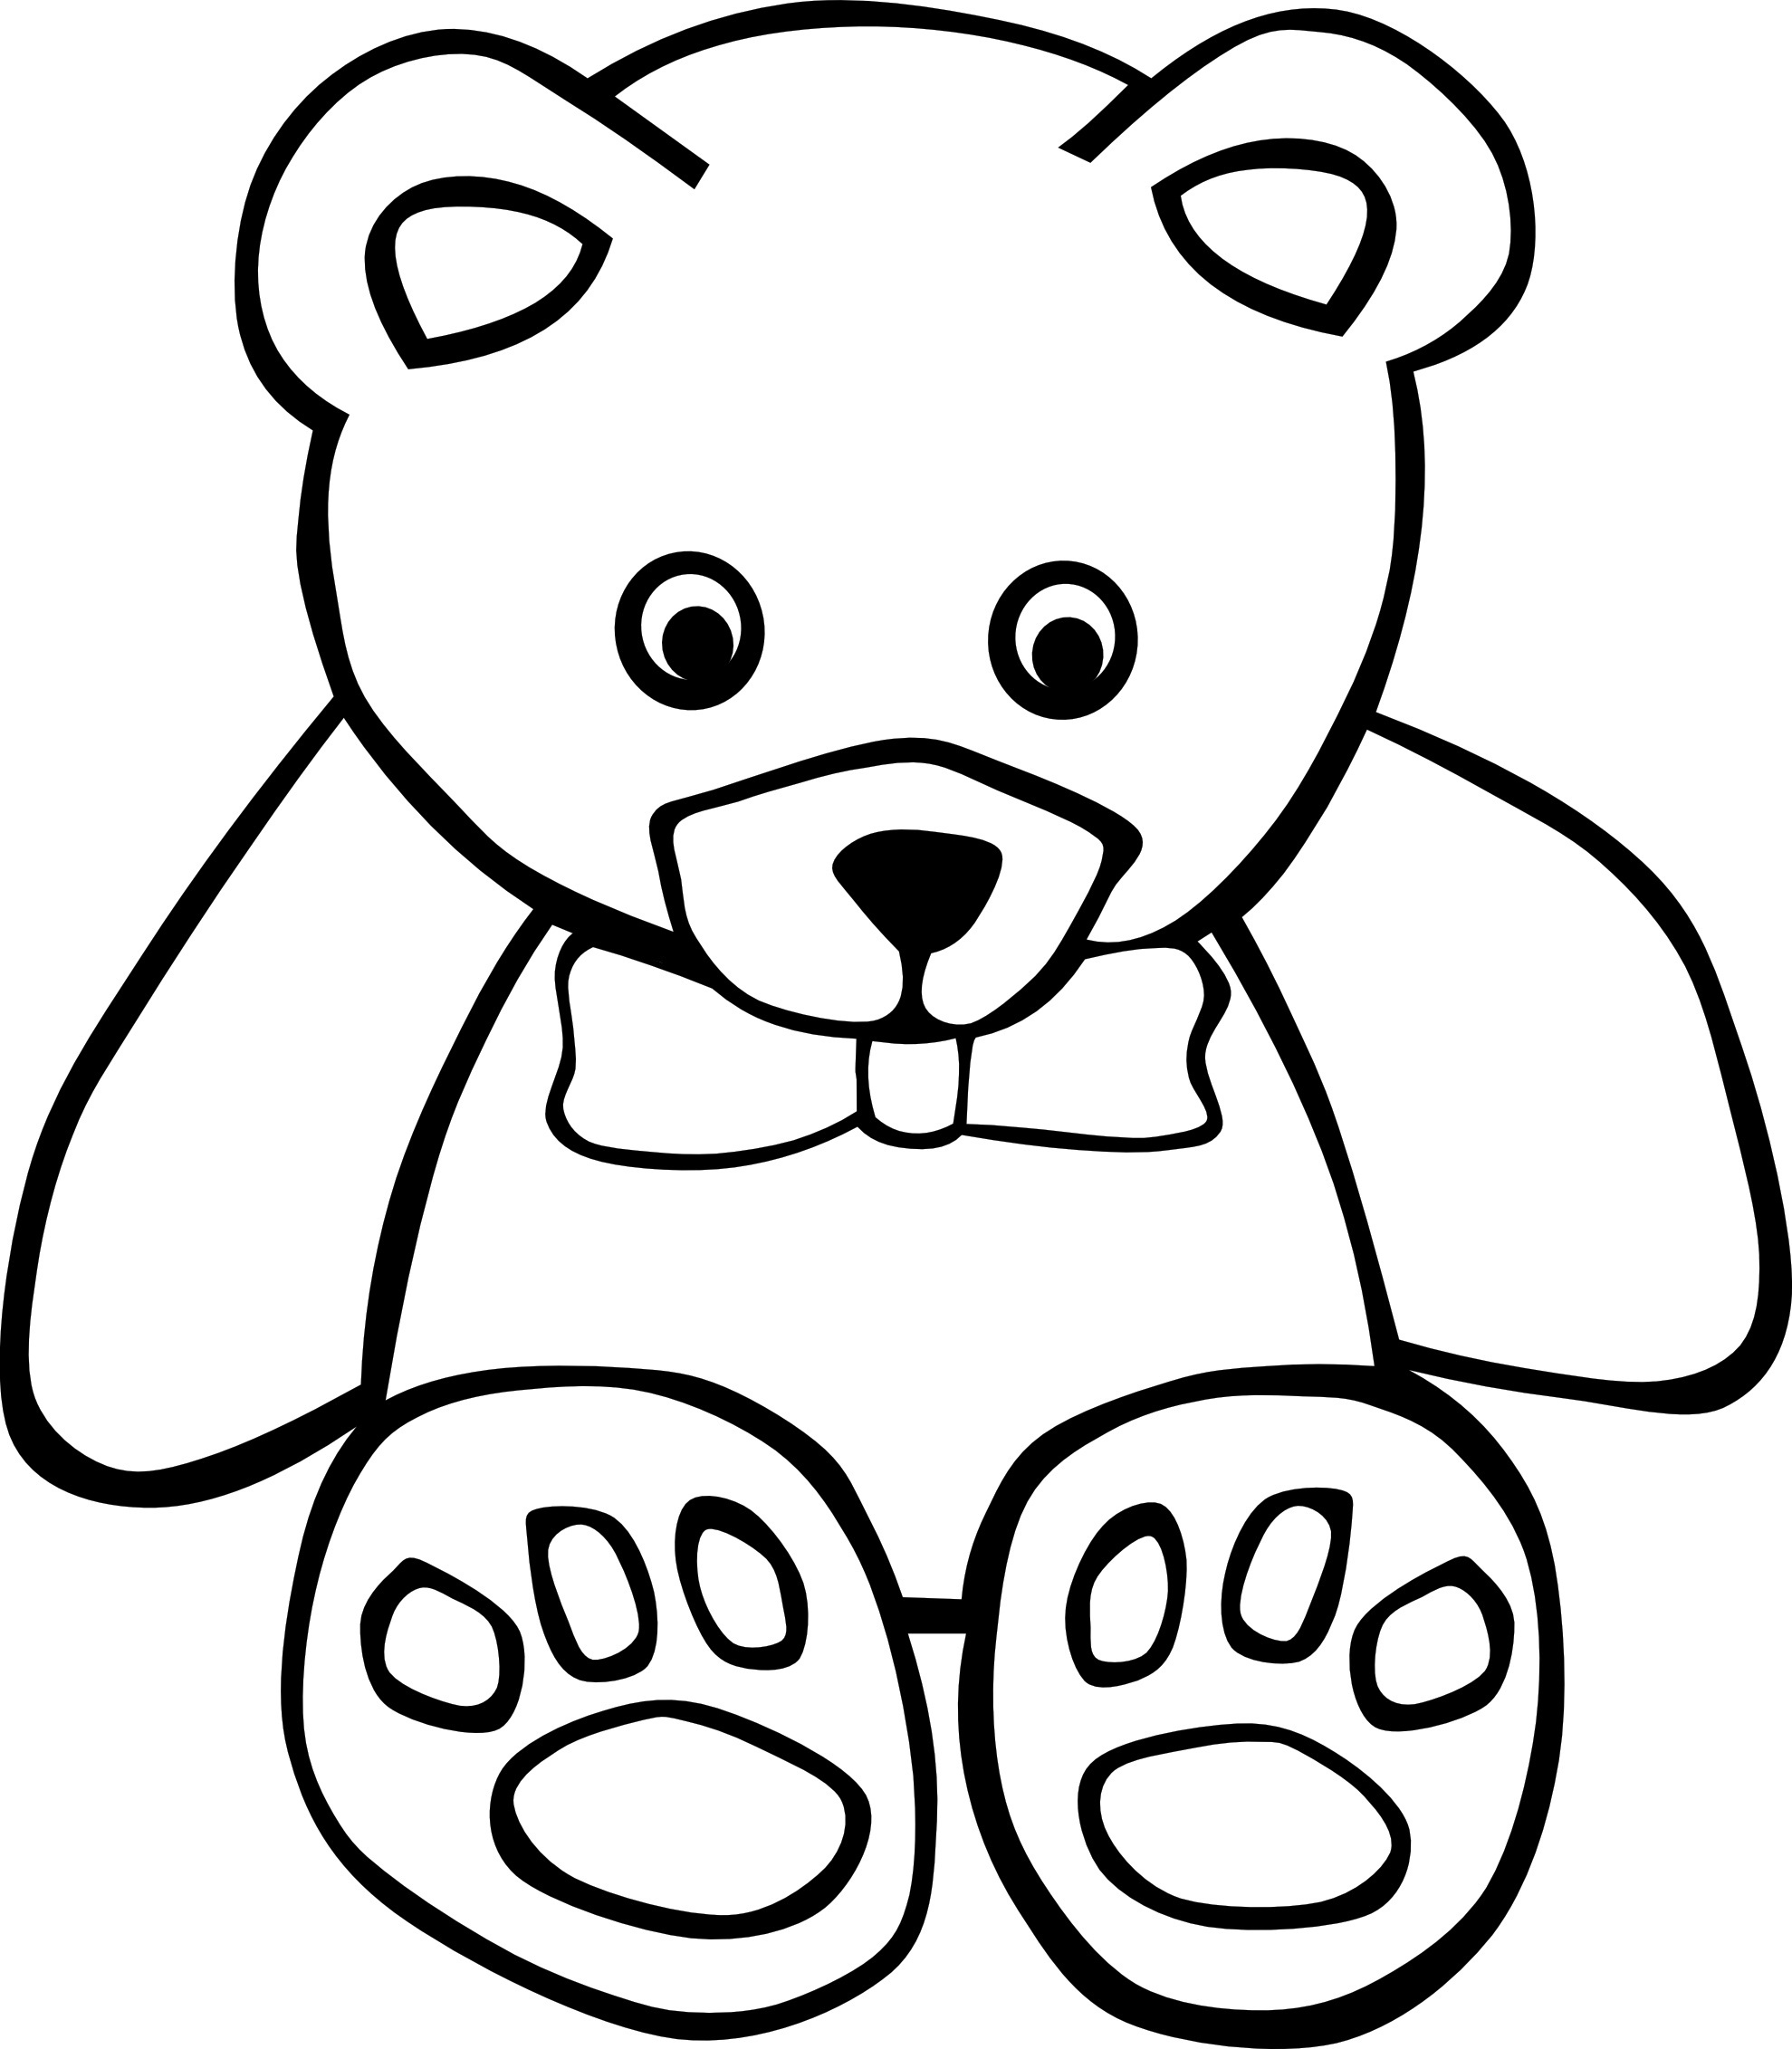 teddy bear colour in free printable teddy bear coloring pages for kids colour in bear teddy